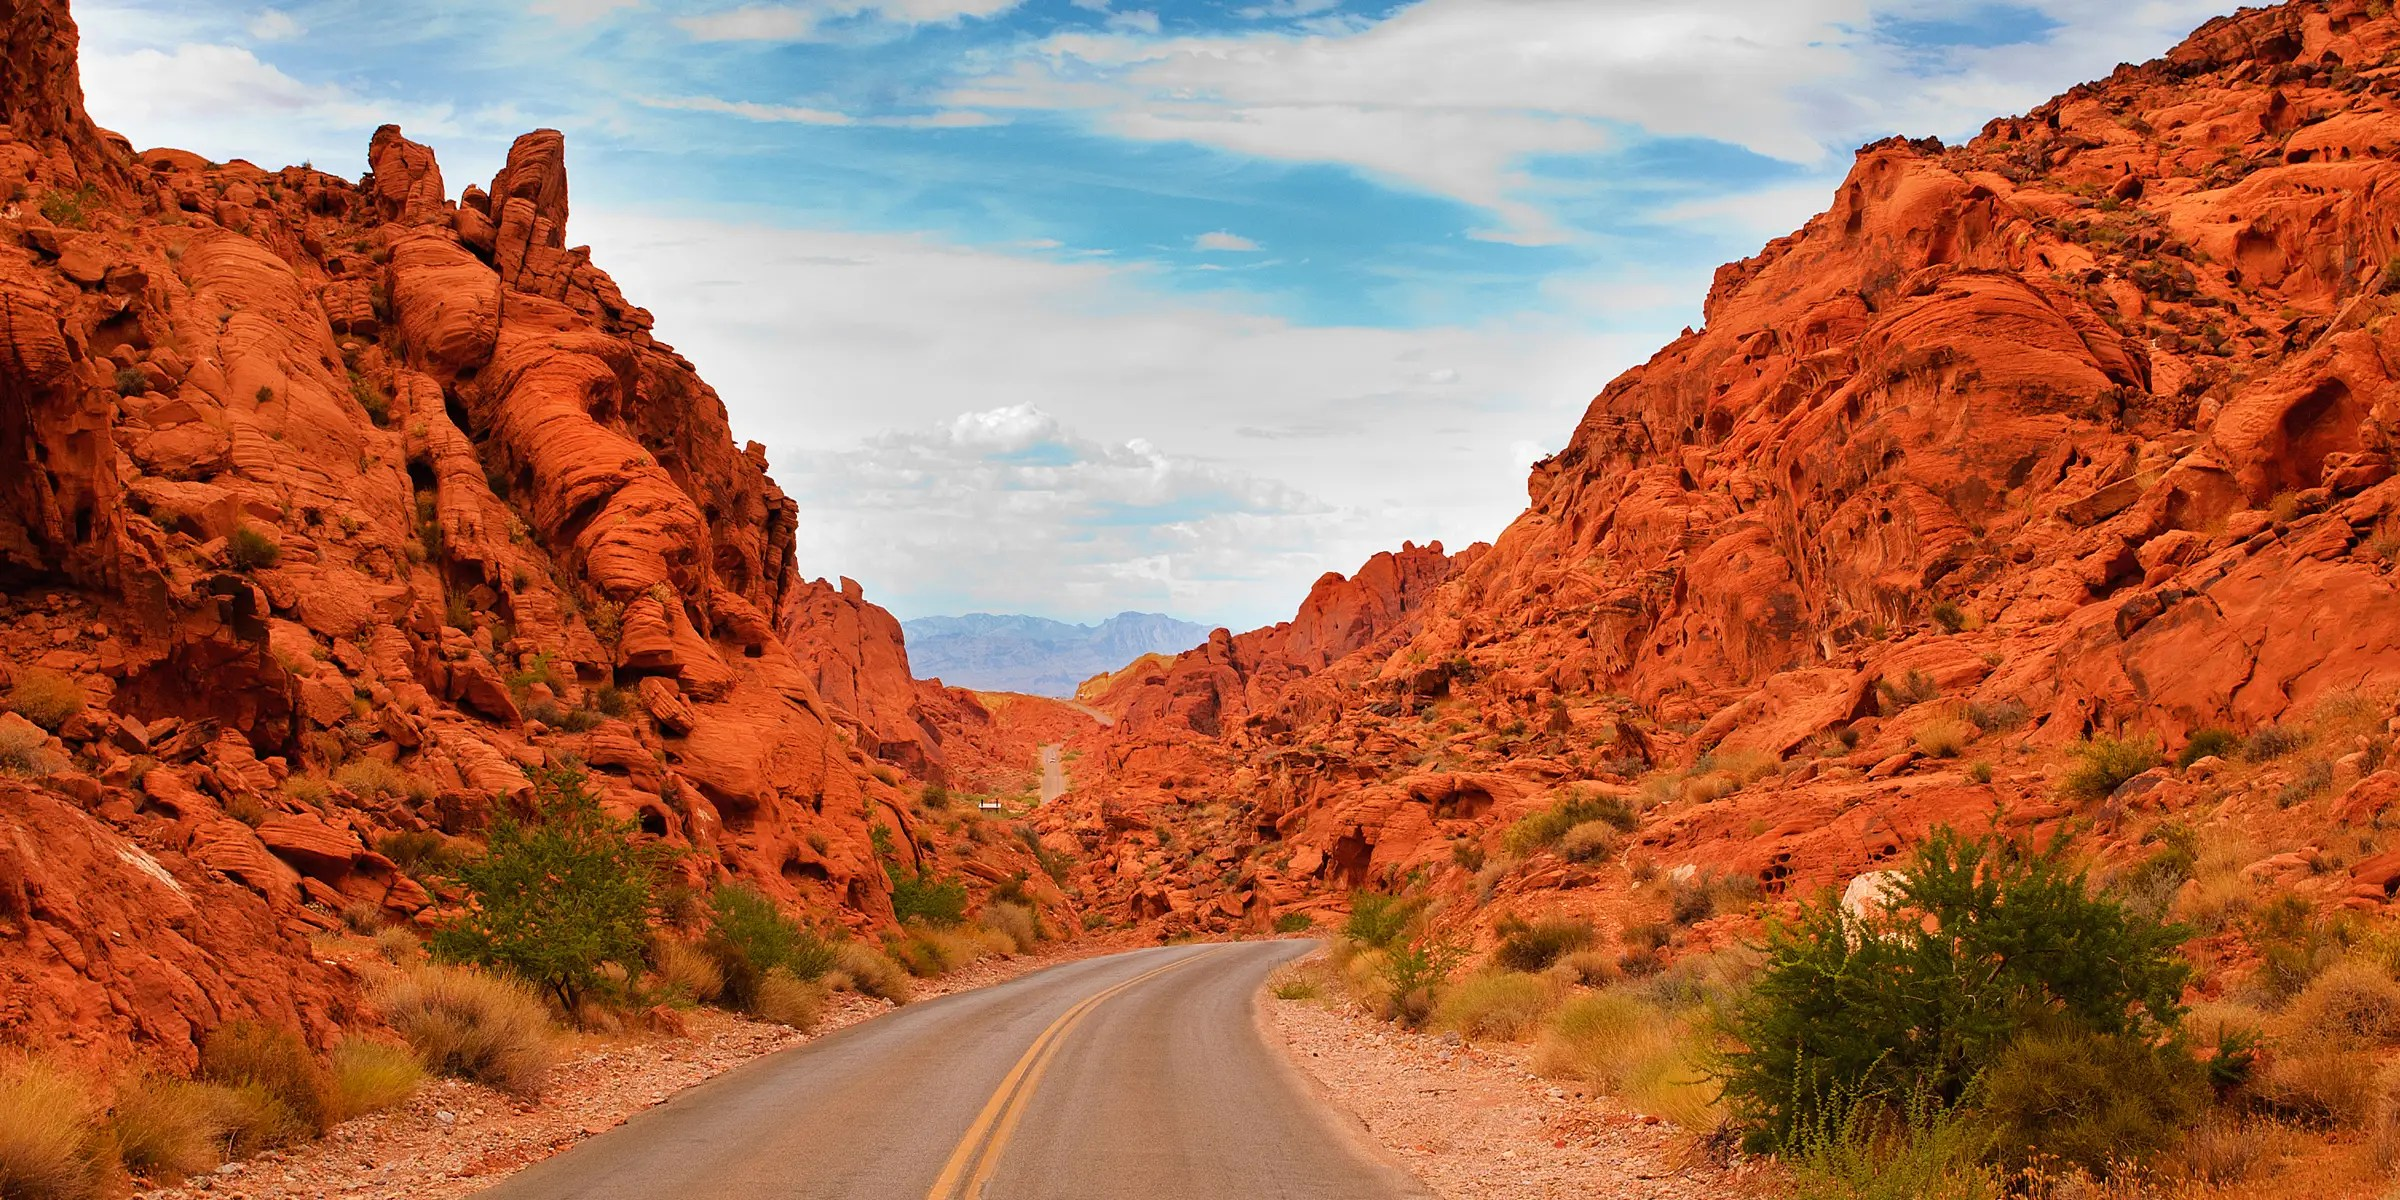 The Valley of Fire Road in Nevada passes through beautiful red sandstone formations that look like they are on fire when reflecting the sun.